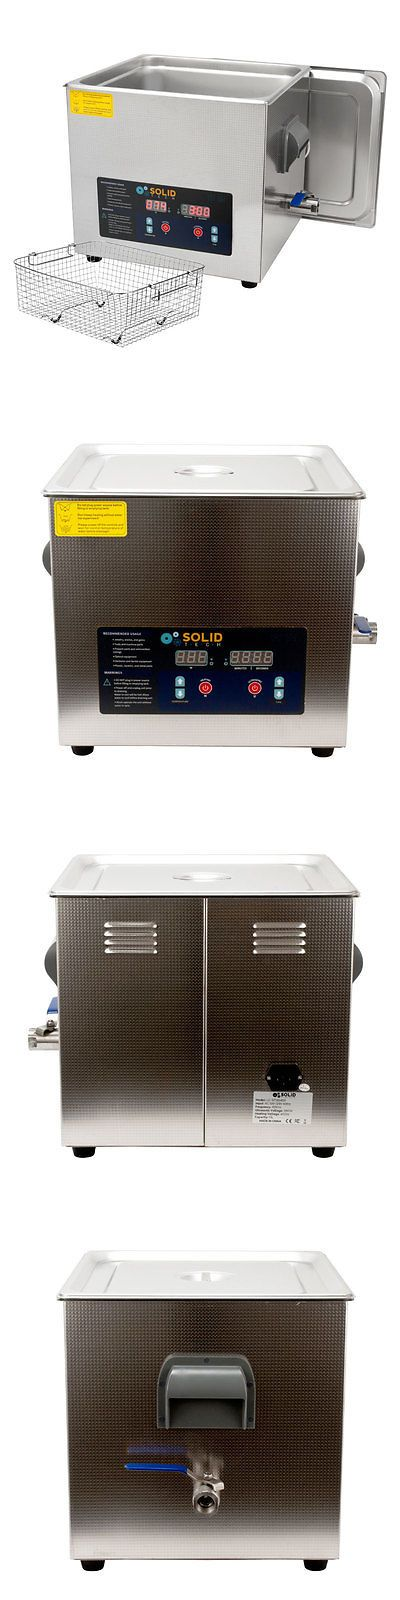 Piercing Supplies and Kits: 3.4 Gallon Solid Tech 13L Steel Ultrasonic Cleaner W Basket Heater Tattoo Grips -> BUY IT NOW ONLY: $229 on eBay!